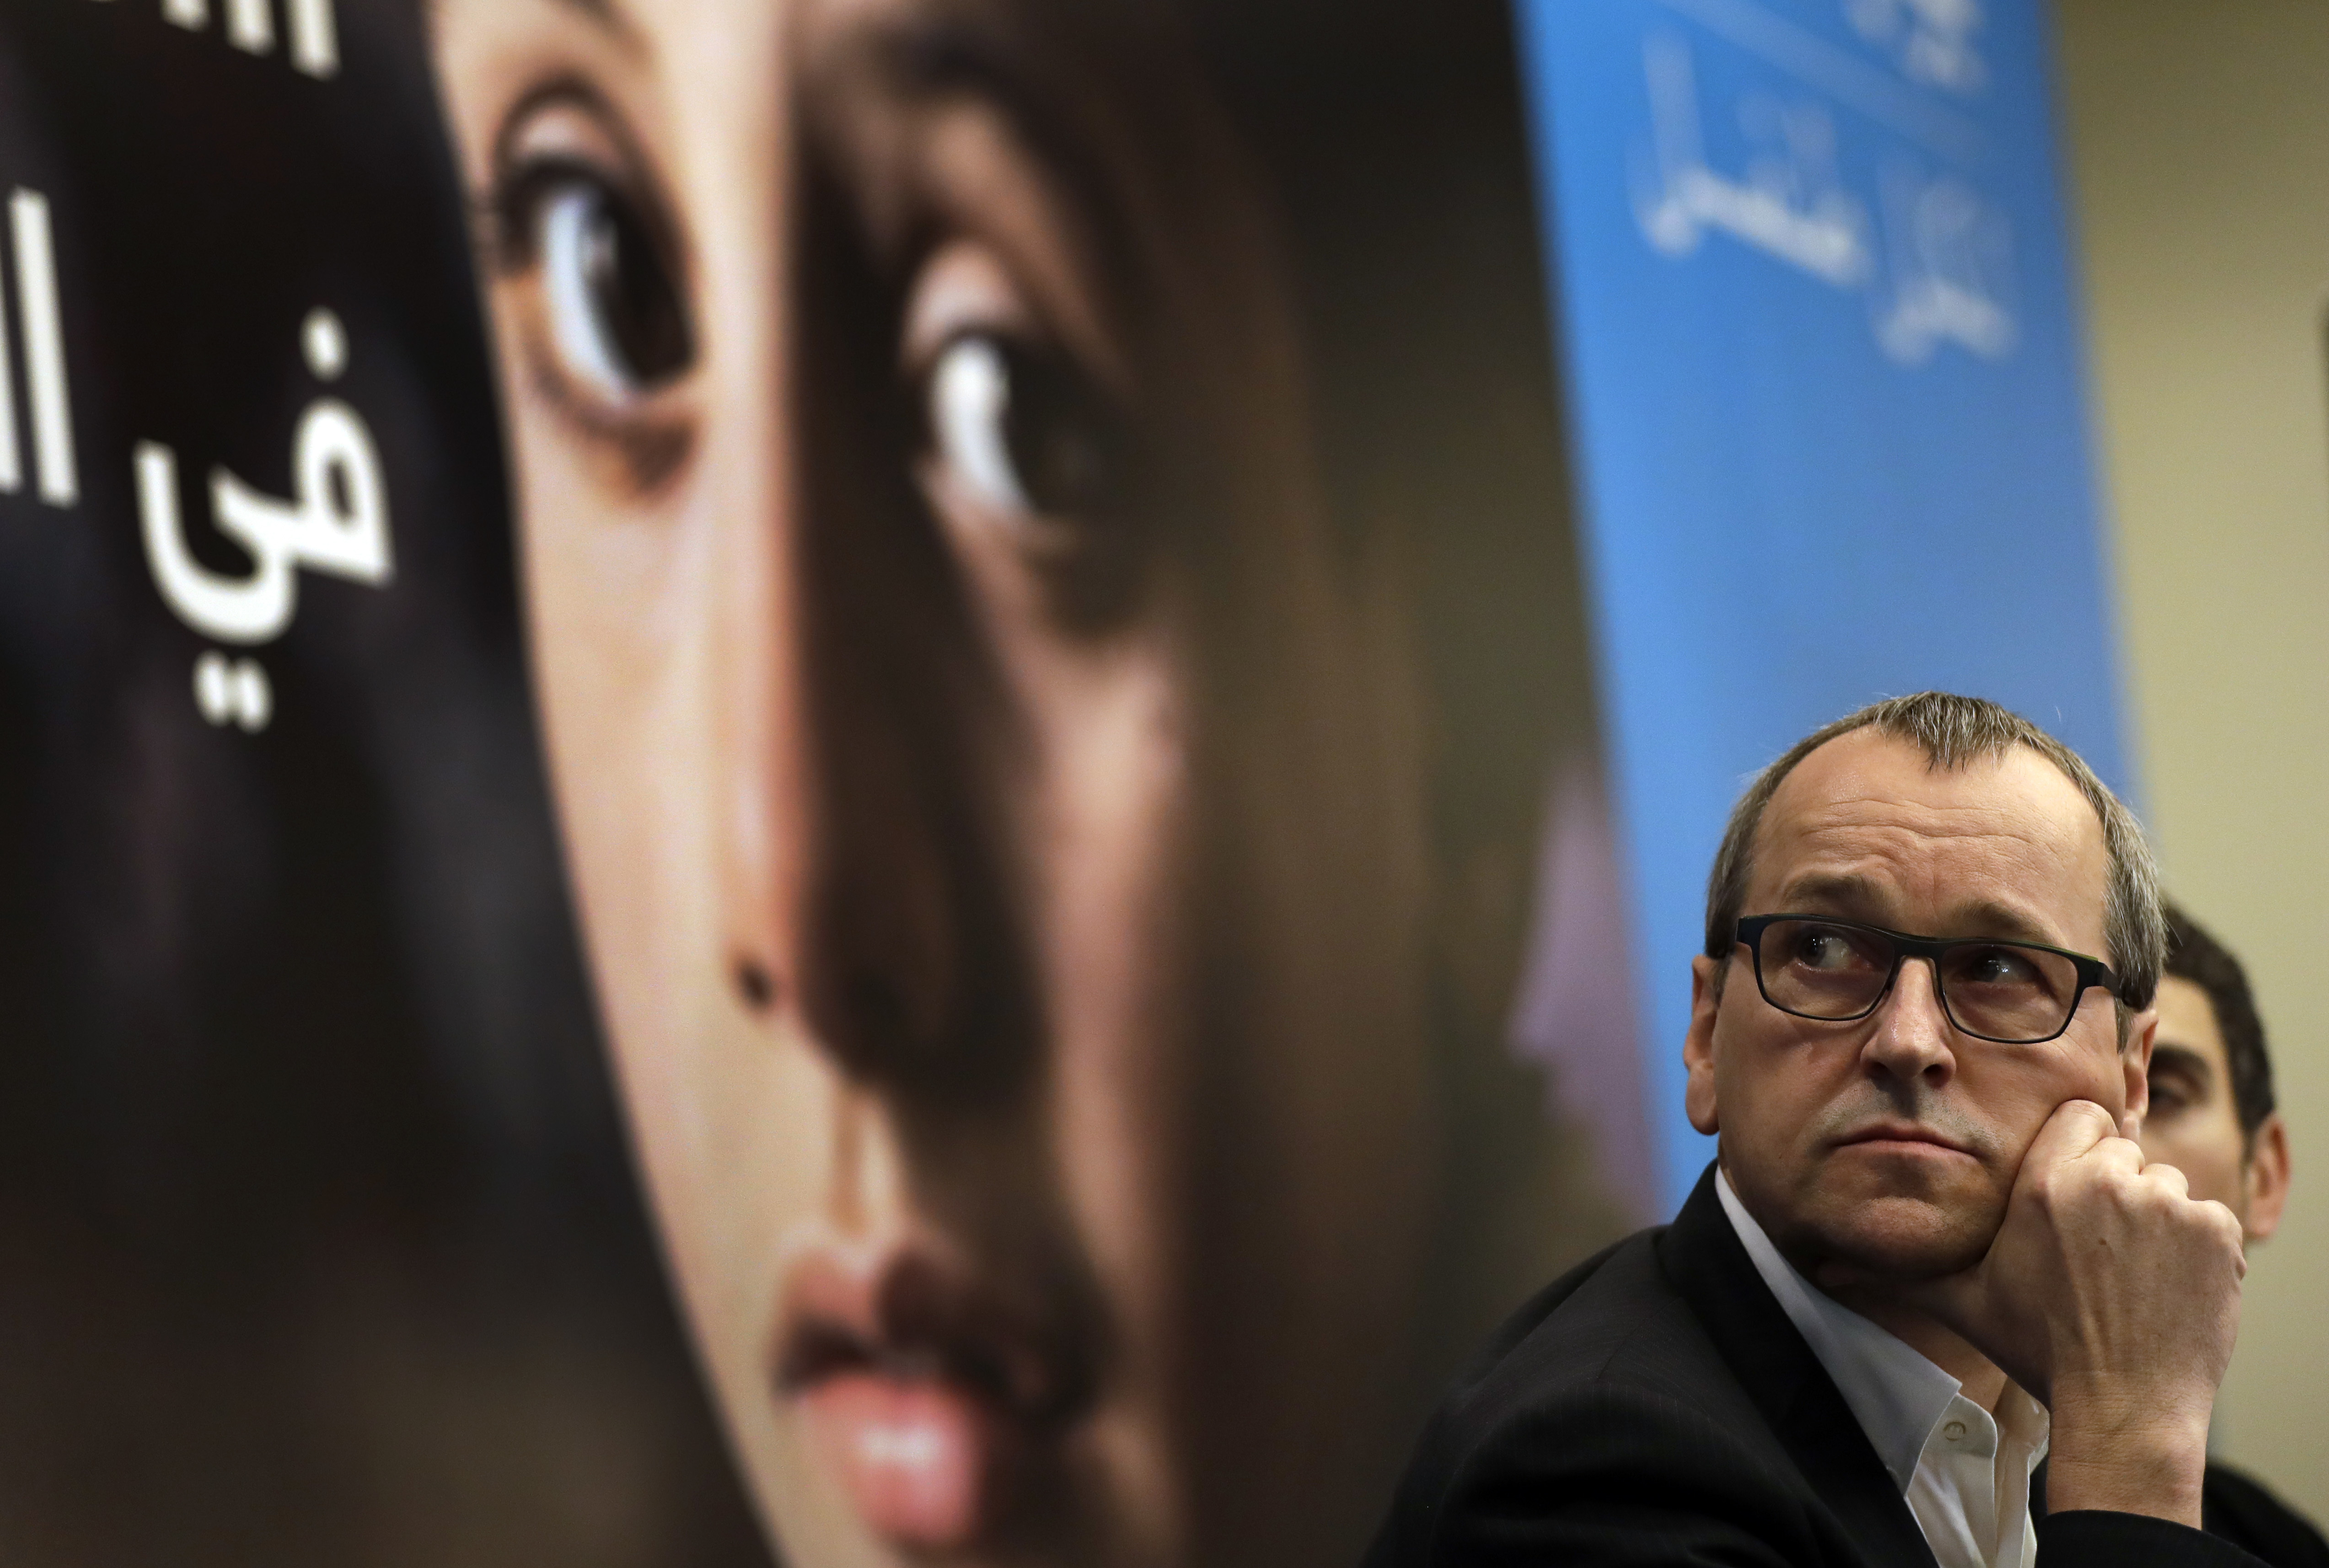 Geert Cappelaere, the U.N. Children's agency (UNICEF) regional director the Middle East and North Africa, watches a video clip on Syrian children during a press conference, in Beirut, Lebanon on March 15, 2017.  (AP Photo/Hussein Malla)